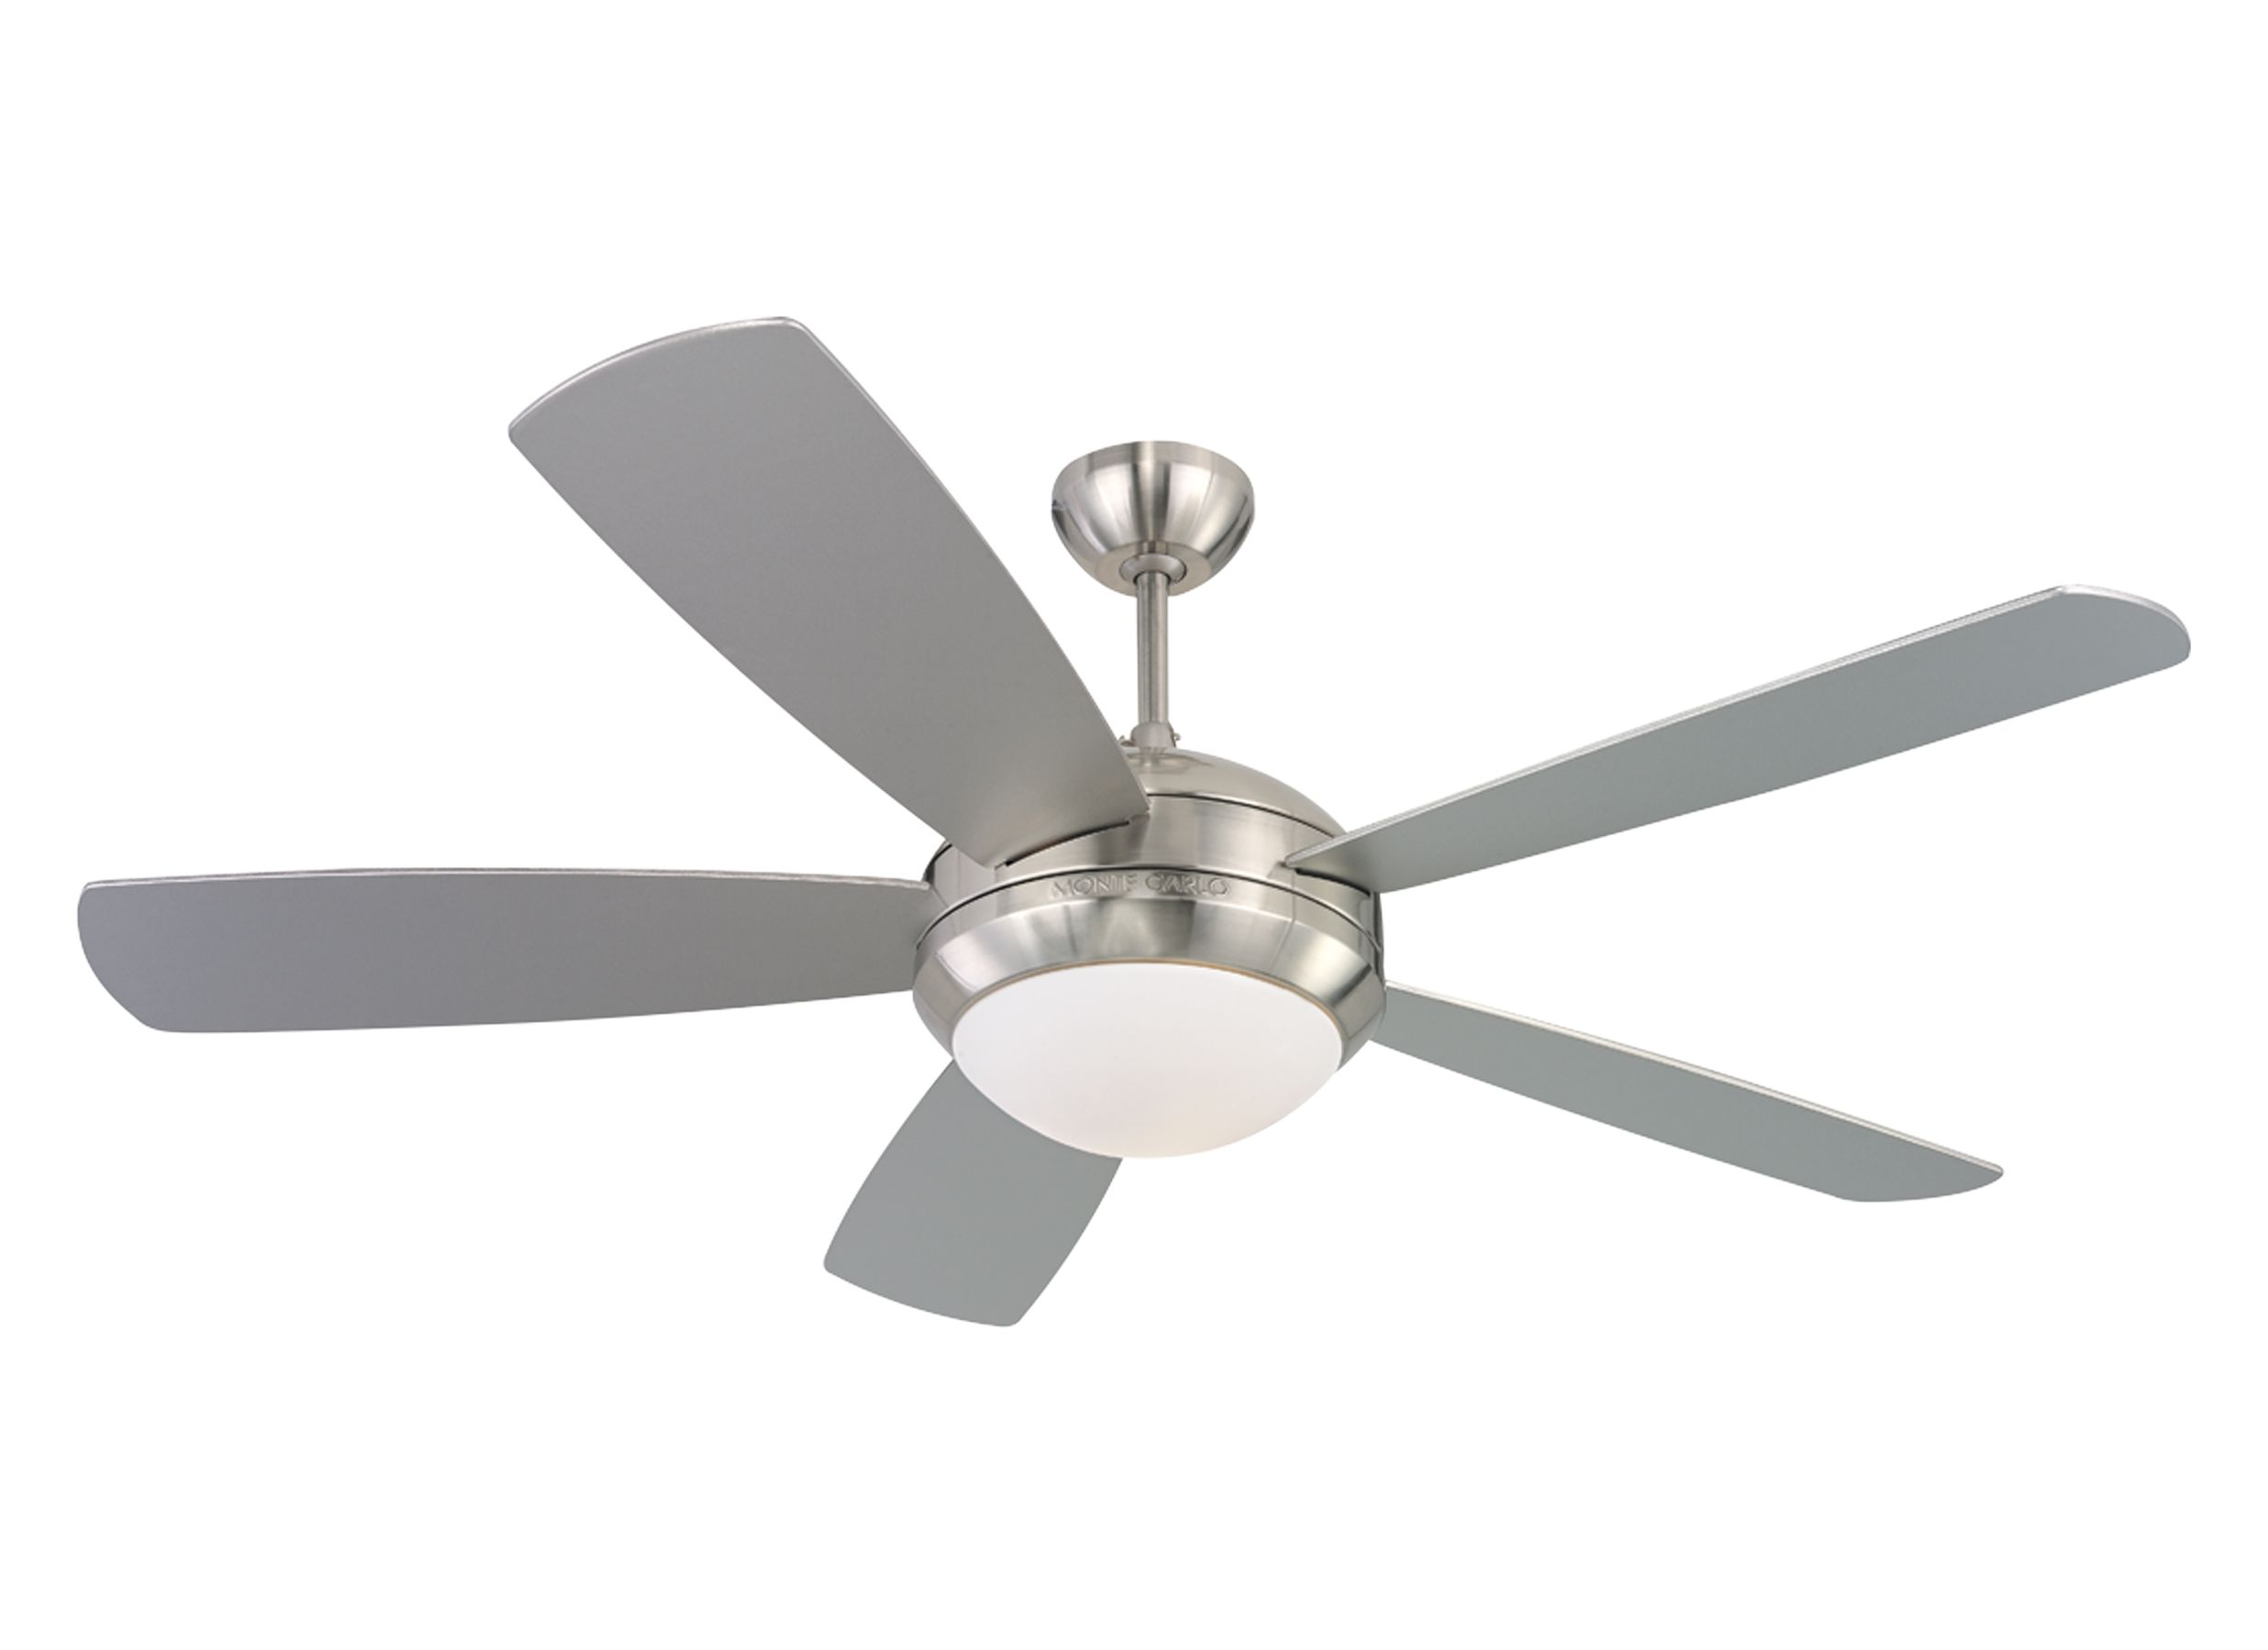 light lights low profile for ceilings fan fans ceiling with